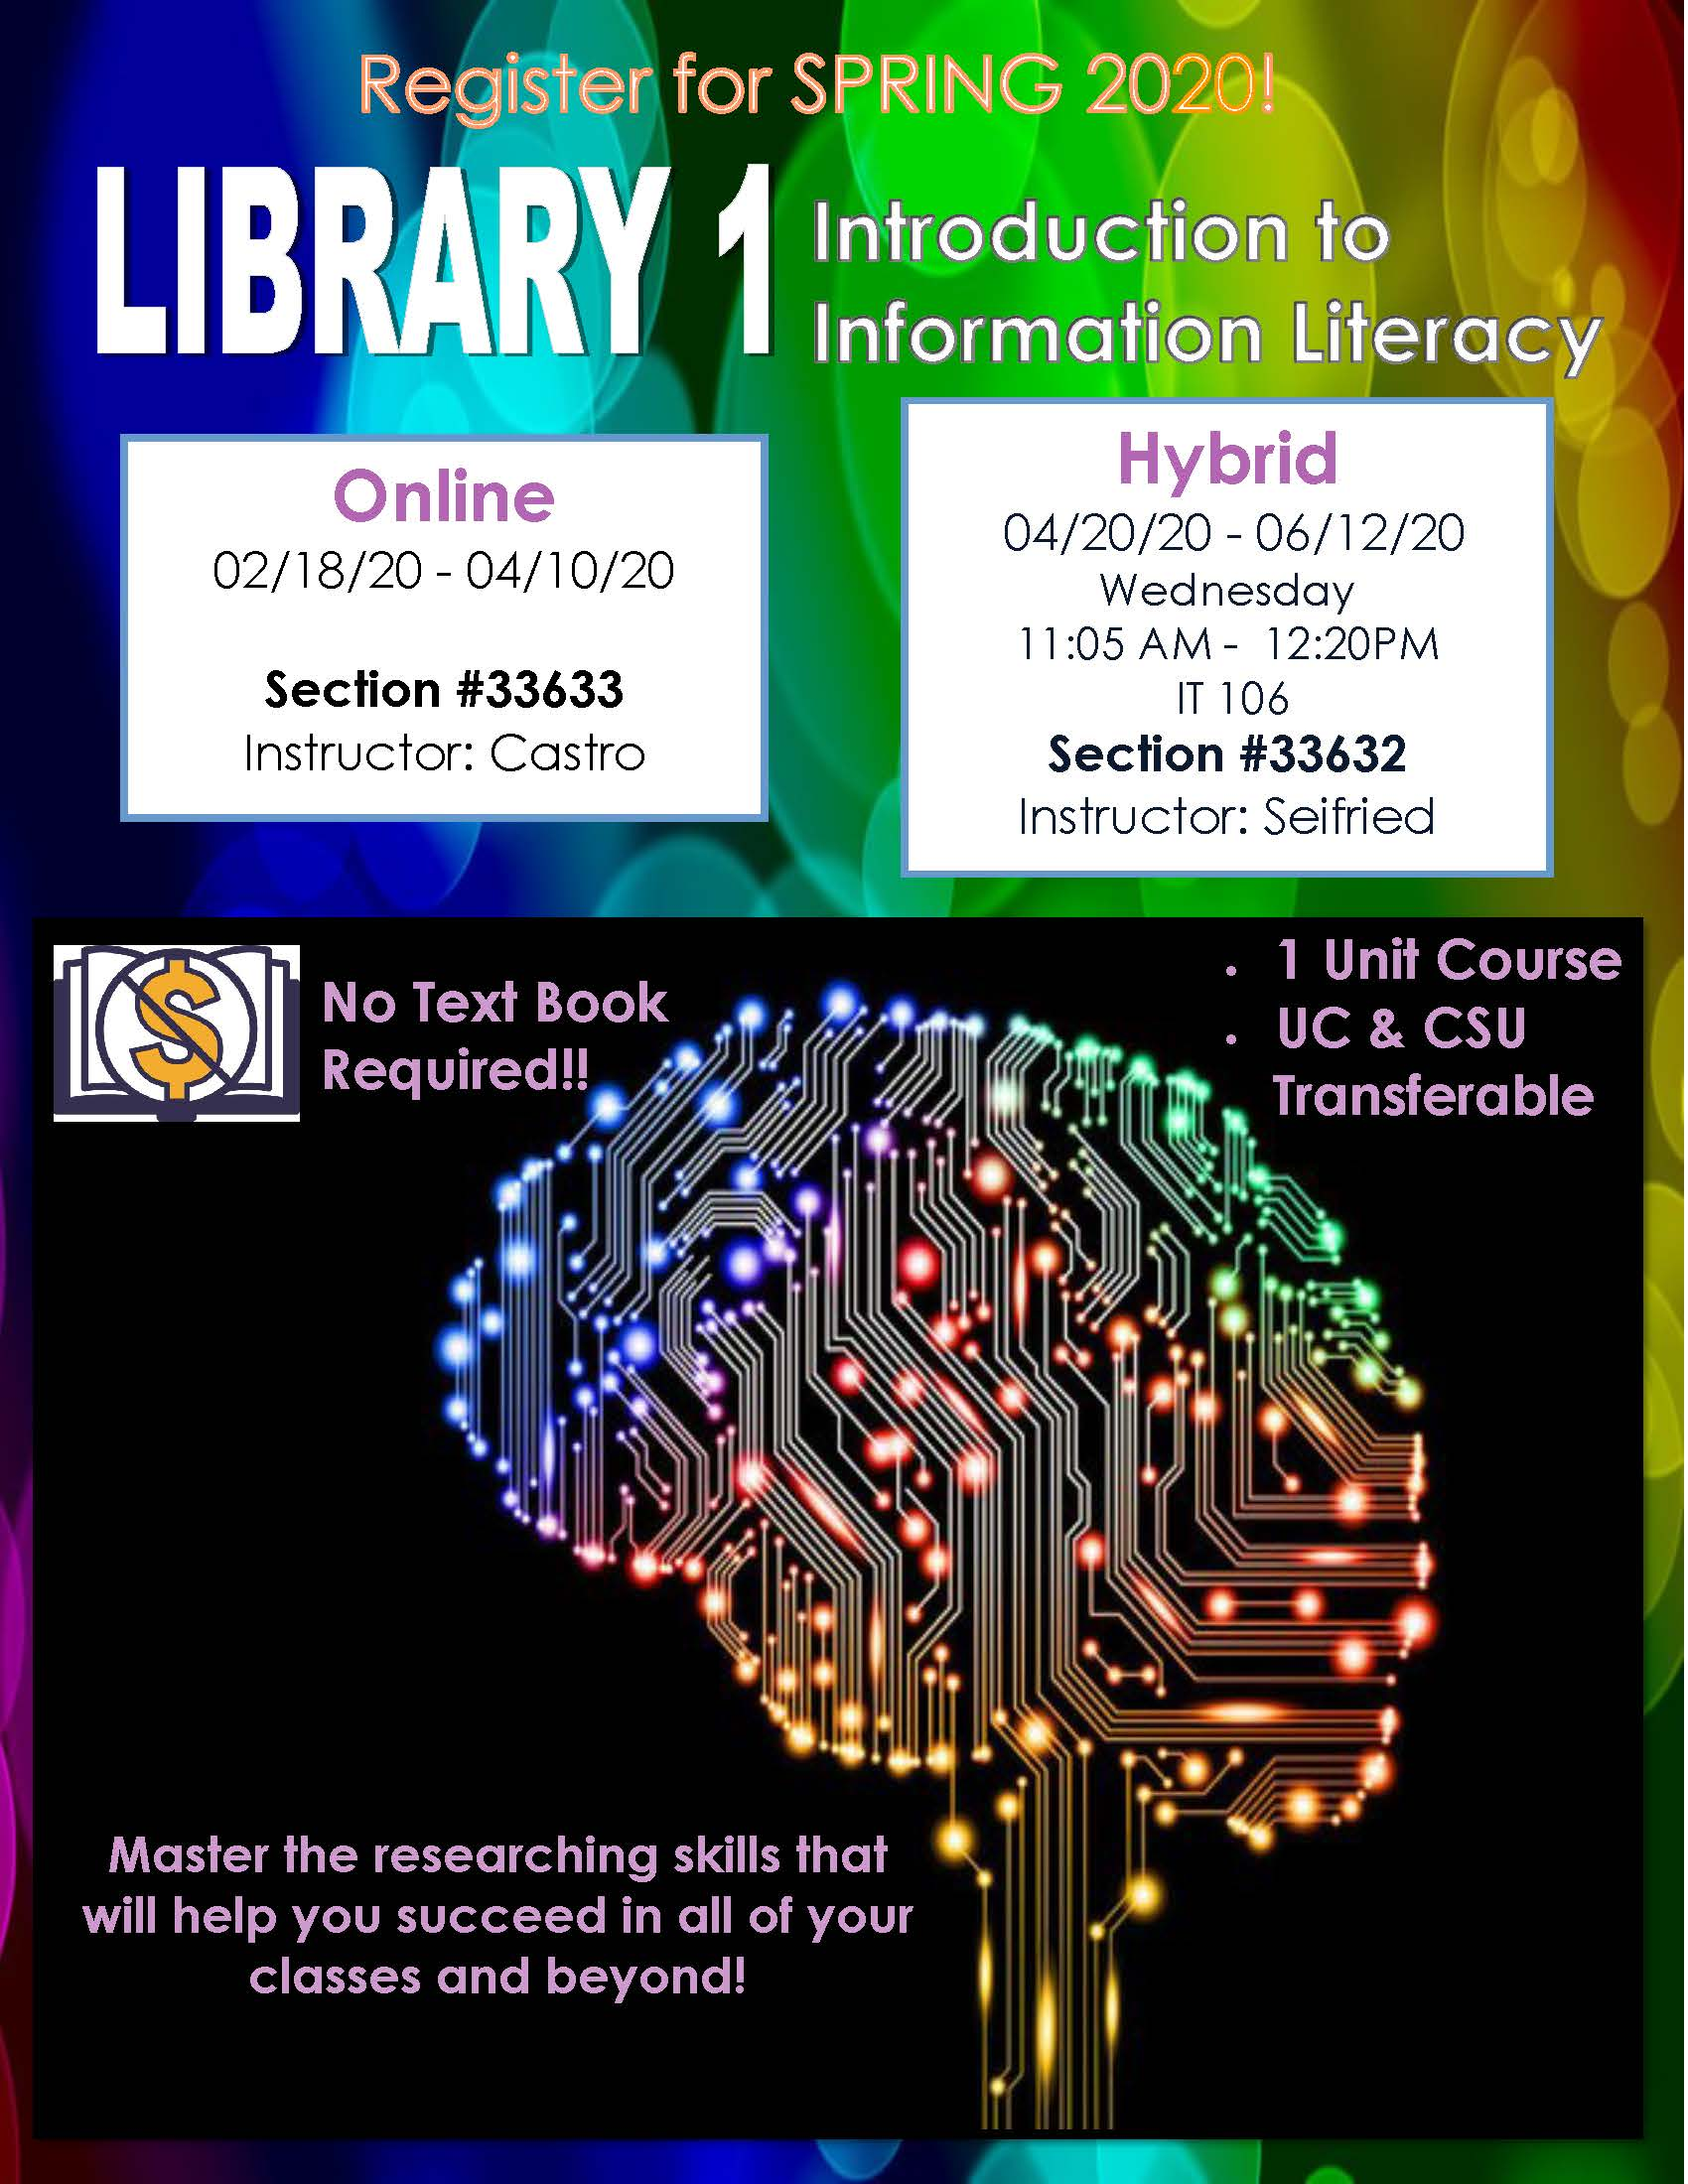 Flyer for LIB 1 Classes offered in Spring